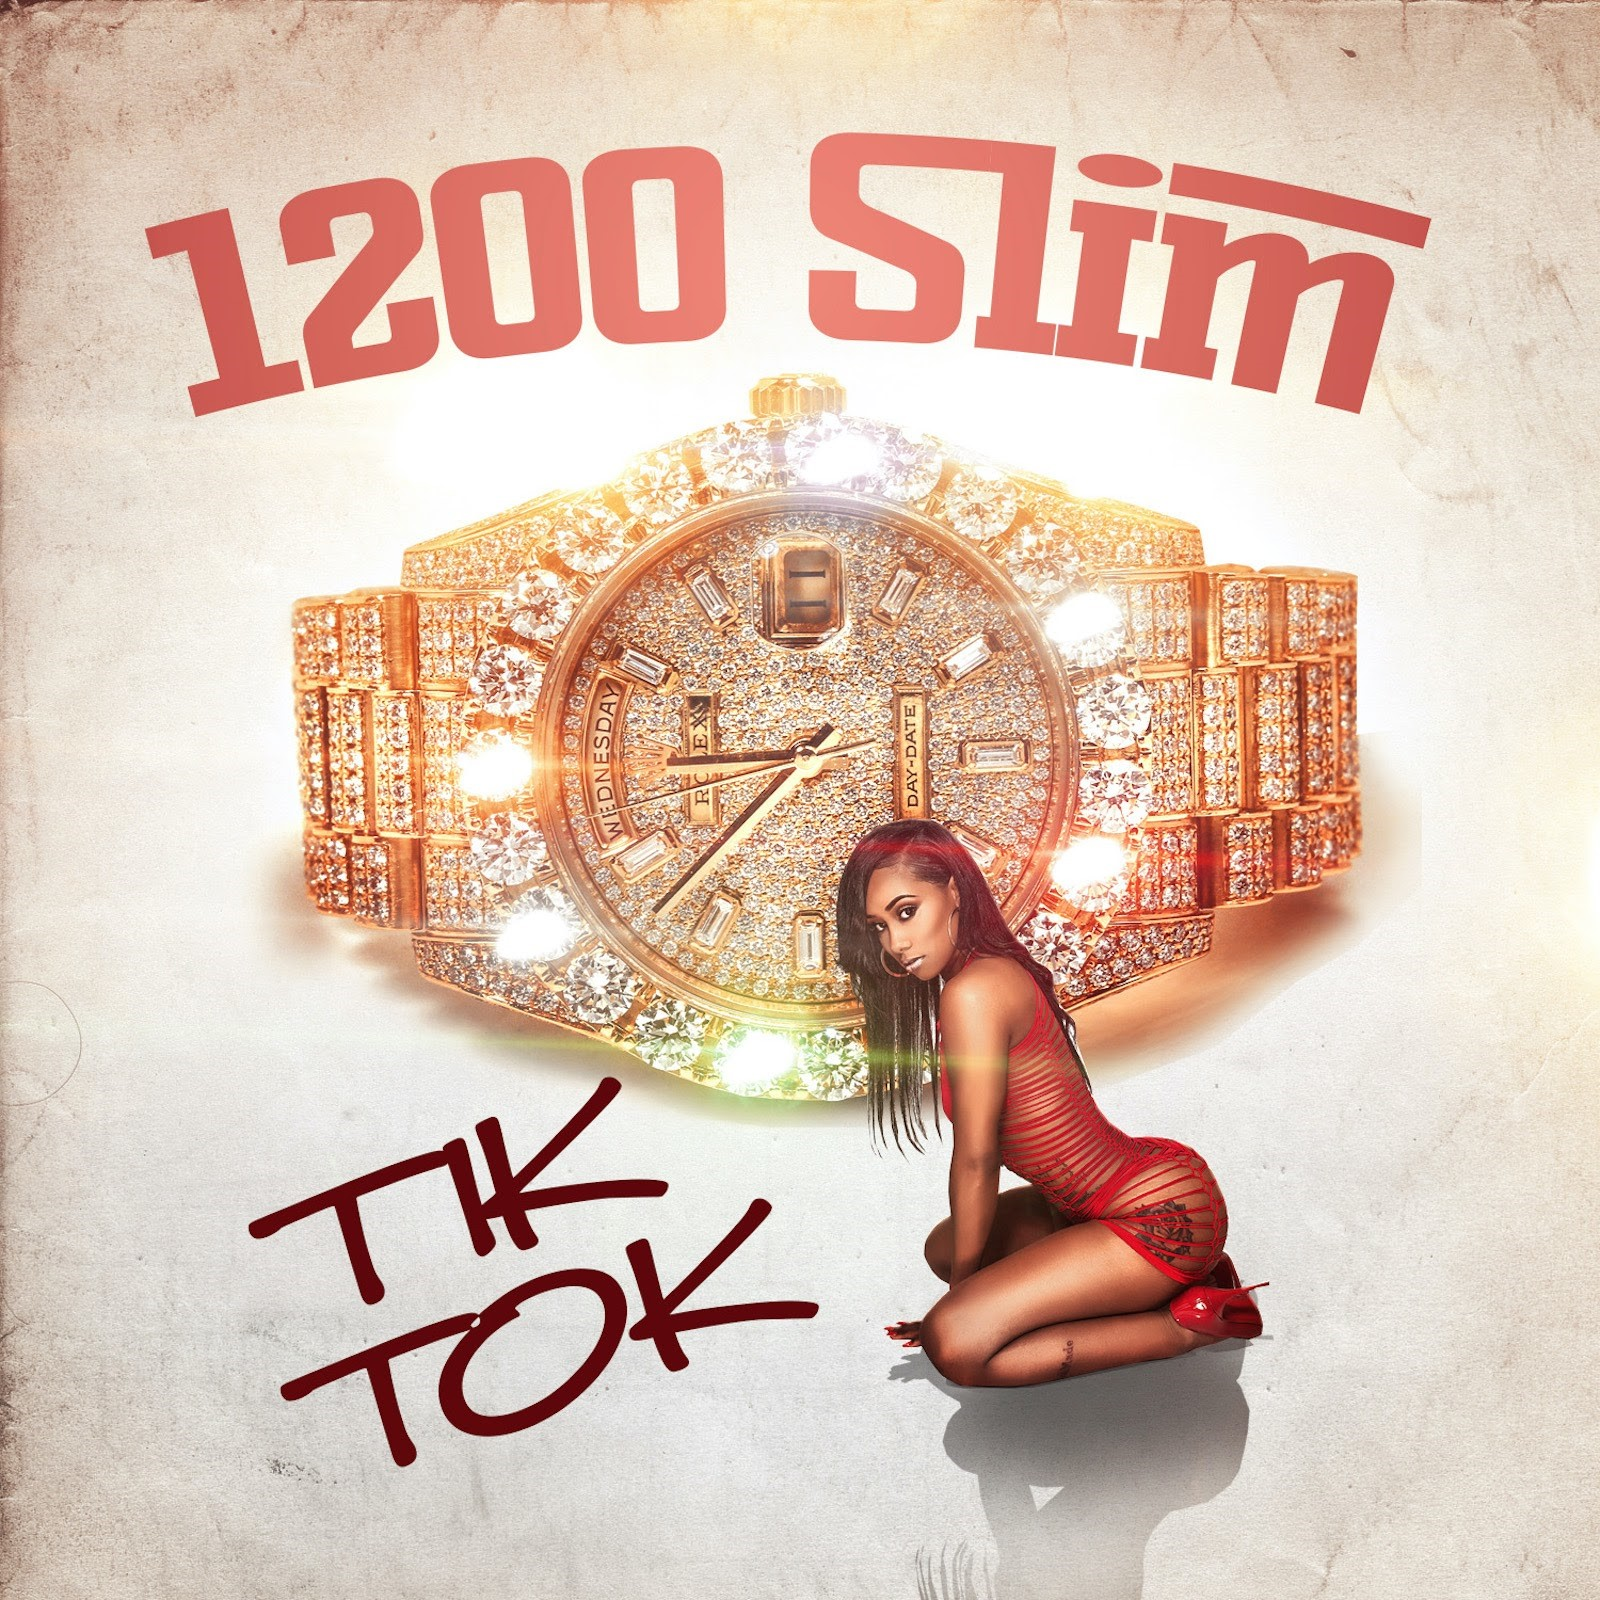 1200 Slim Is In The Fast Lane With New Album-Teaser Joint 'Tik Tok'